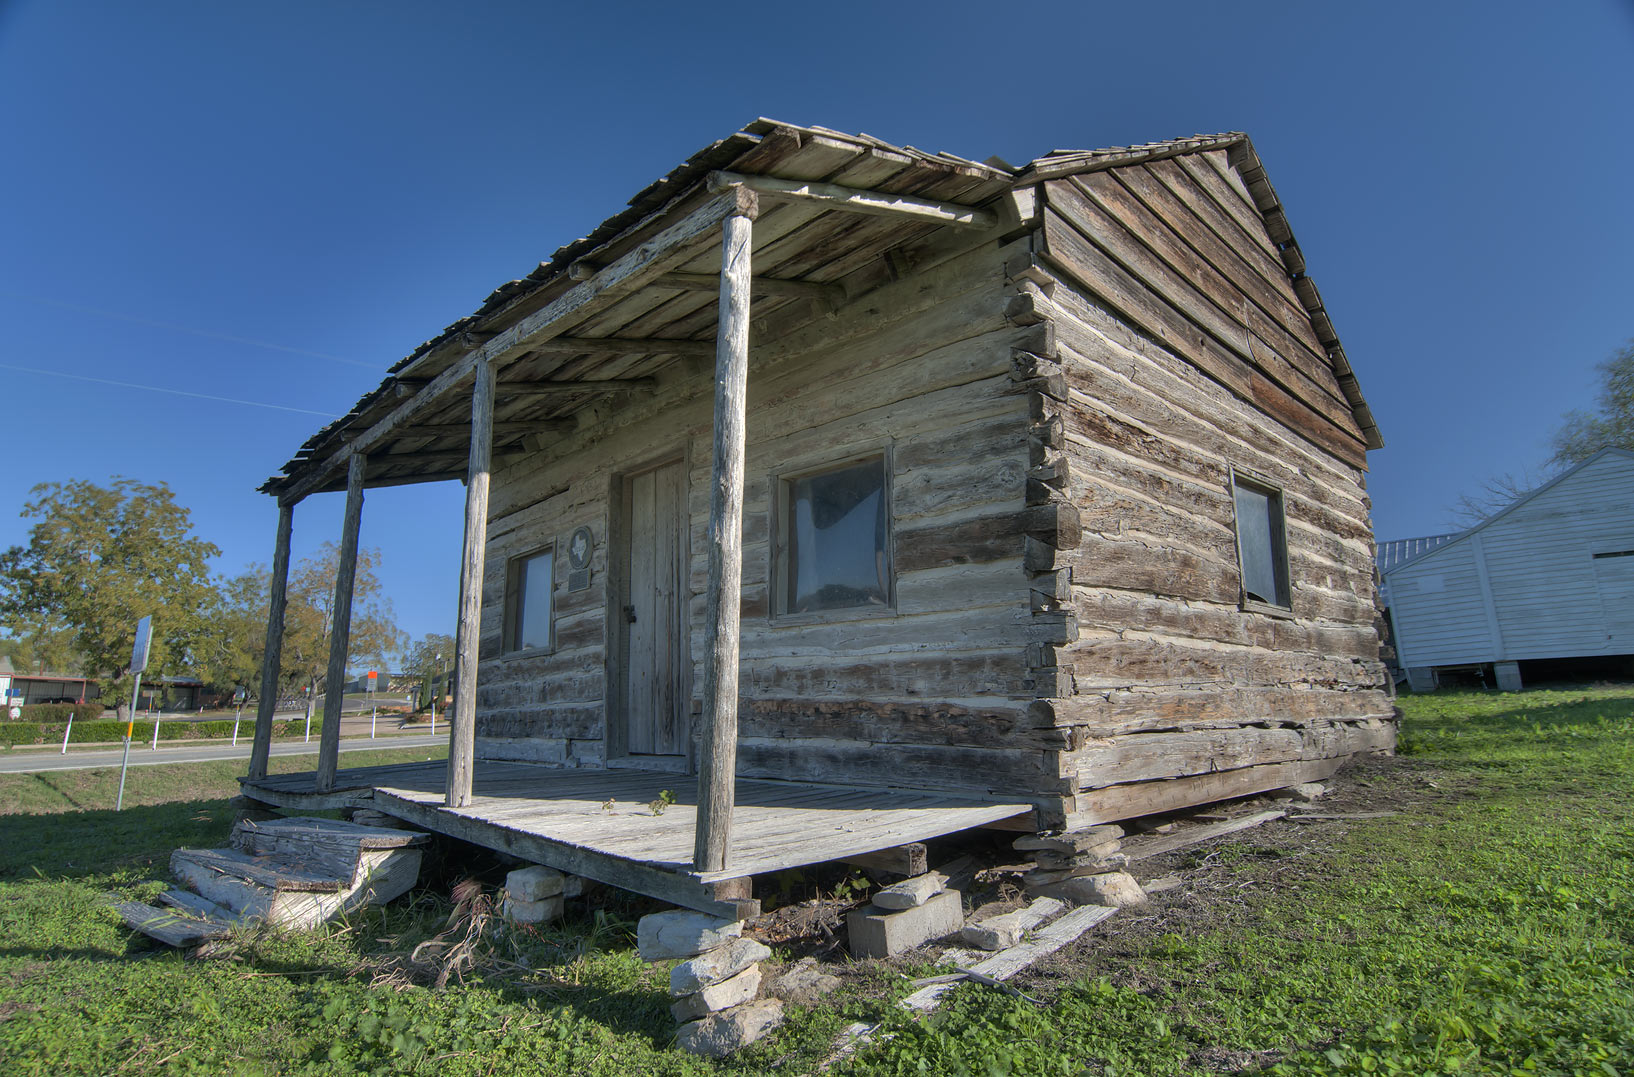 Steinhagen Log Cabin at morning. Anderson, Texas